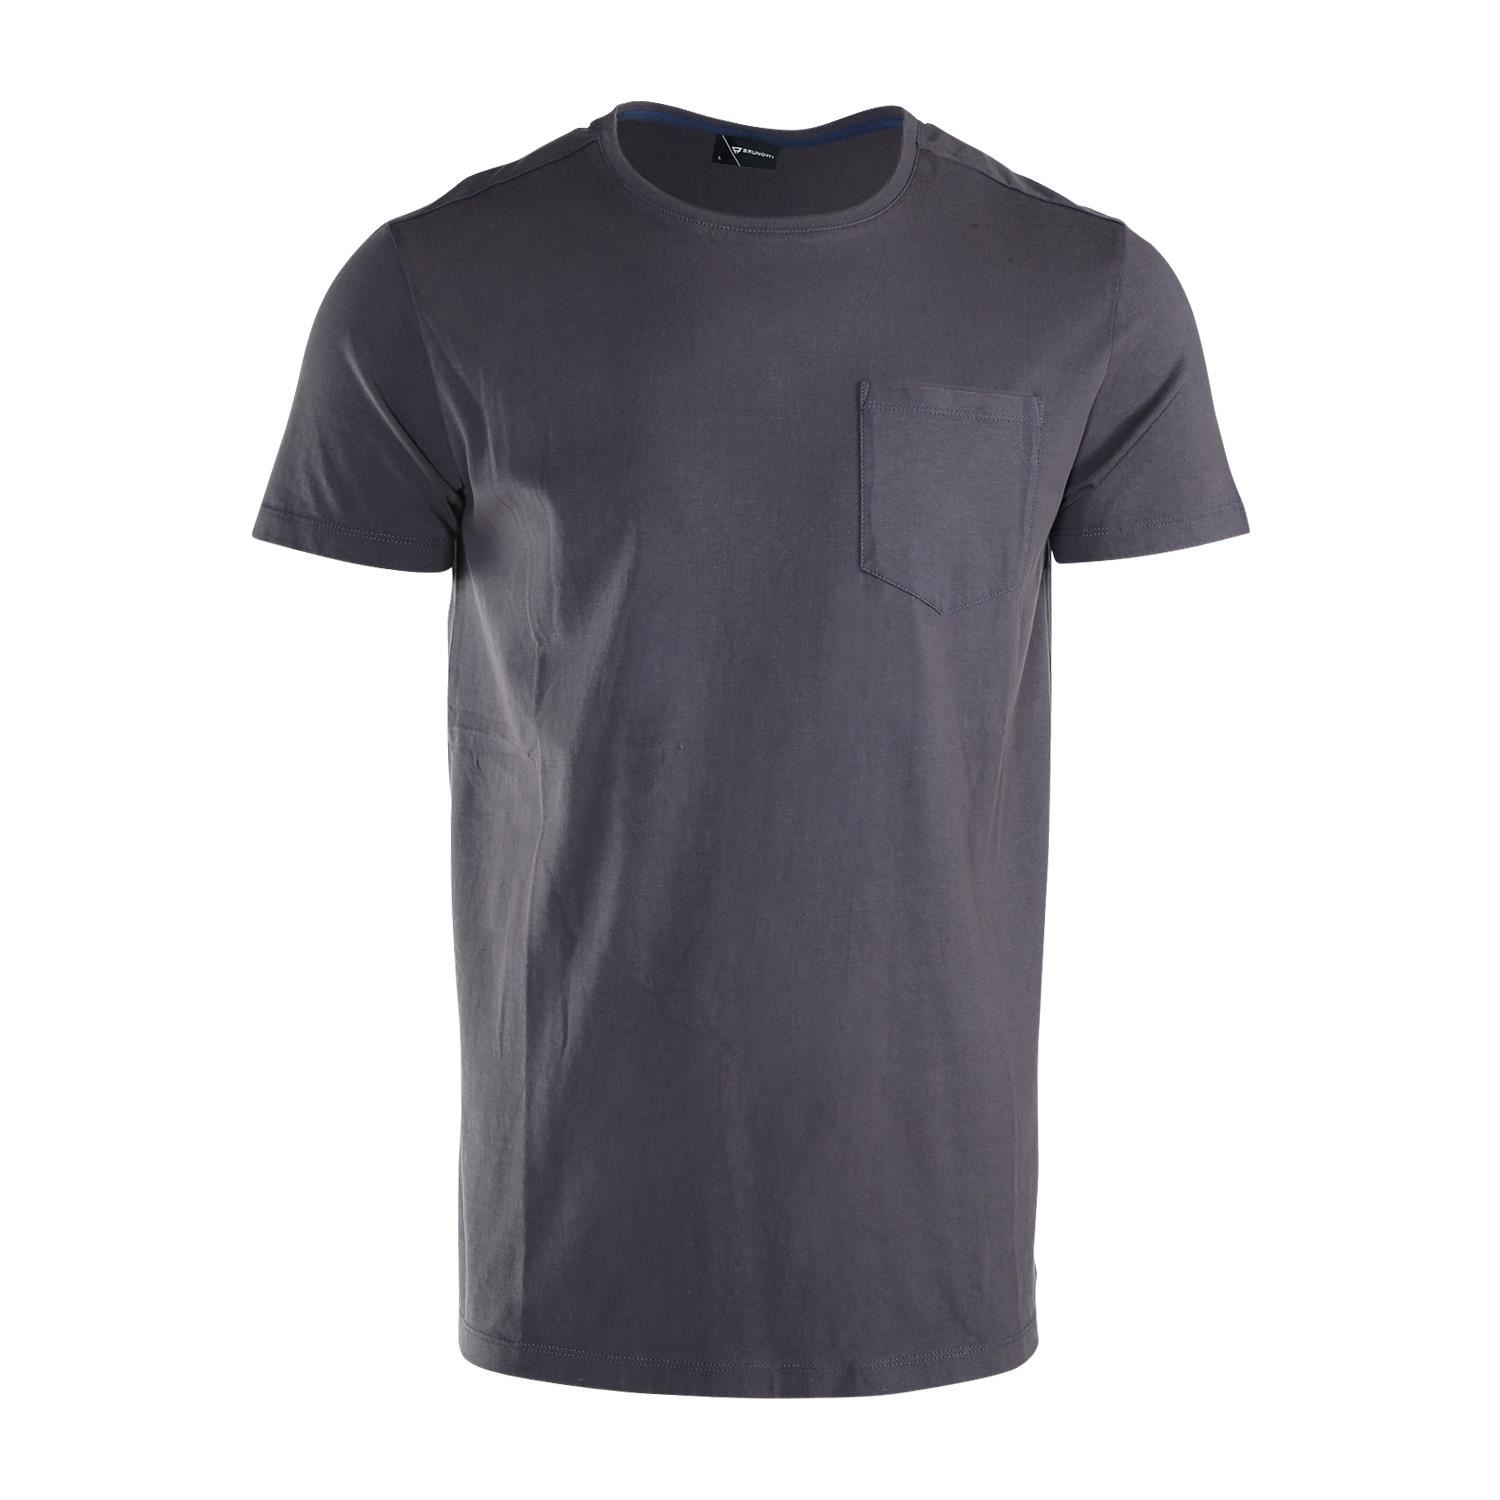 Brunotti Axle  (grey) - men t-shirts & polos - Brunotti online shop